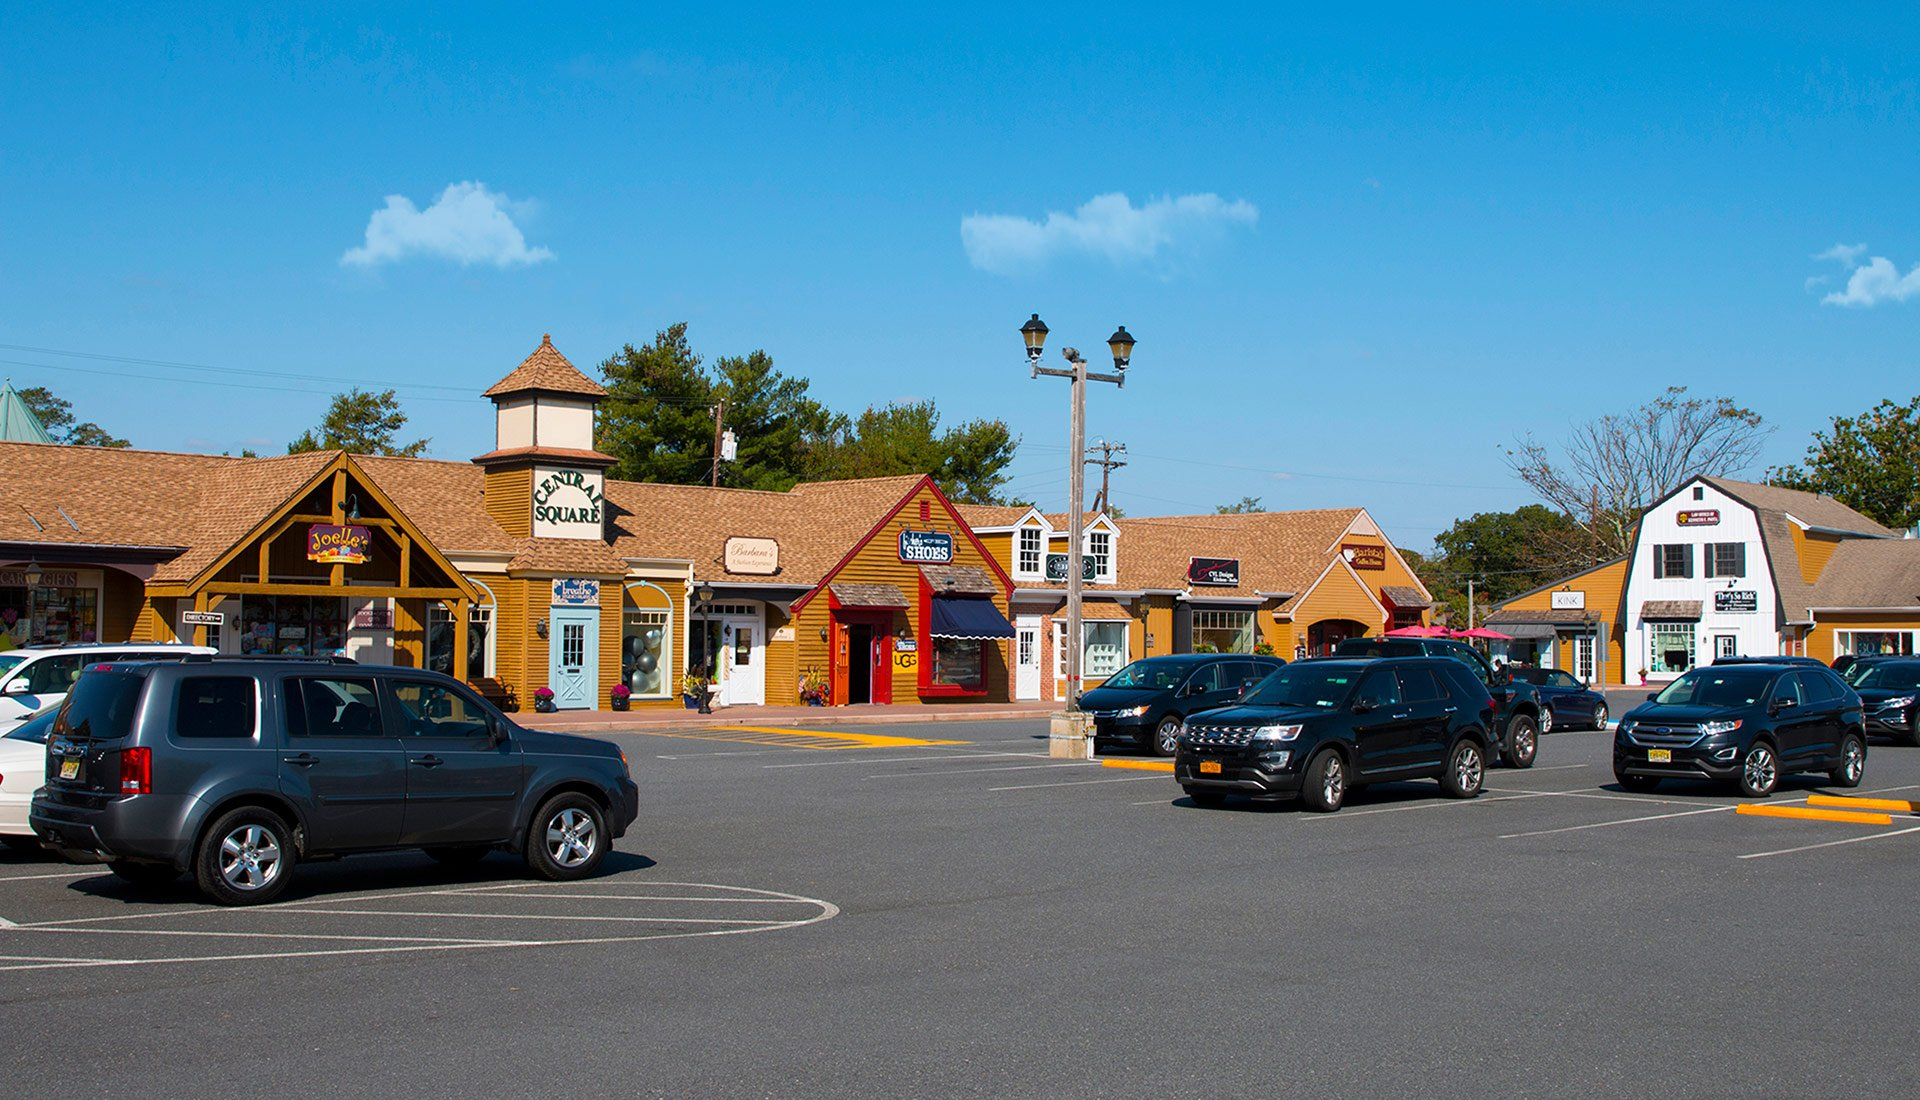 Central Square, Rte. 9 & Central Avenue, 199 New Road, Linwood, NJ 08221